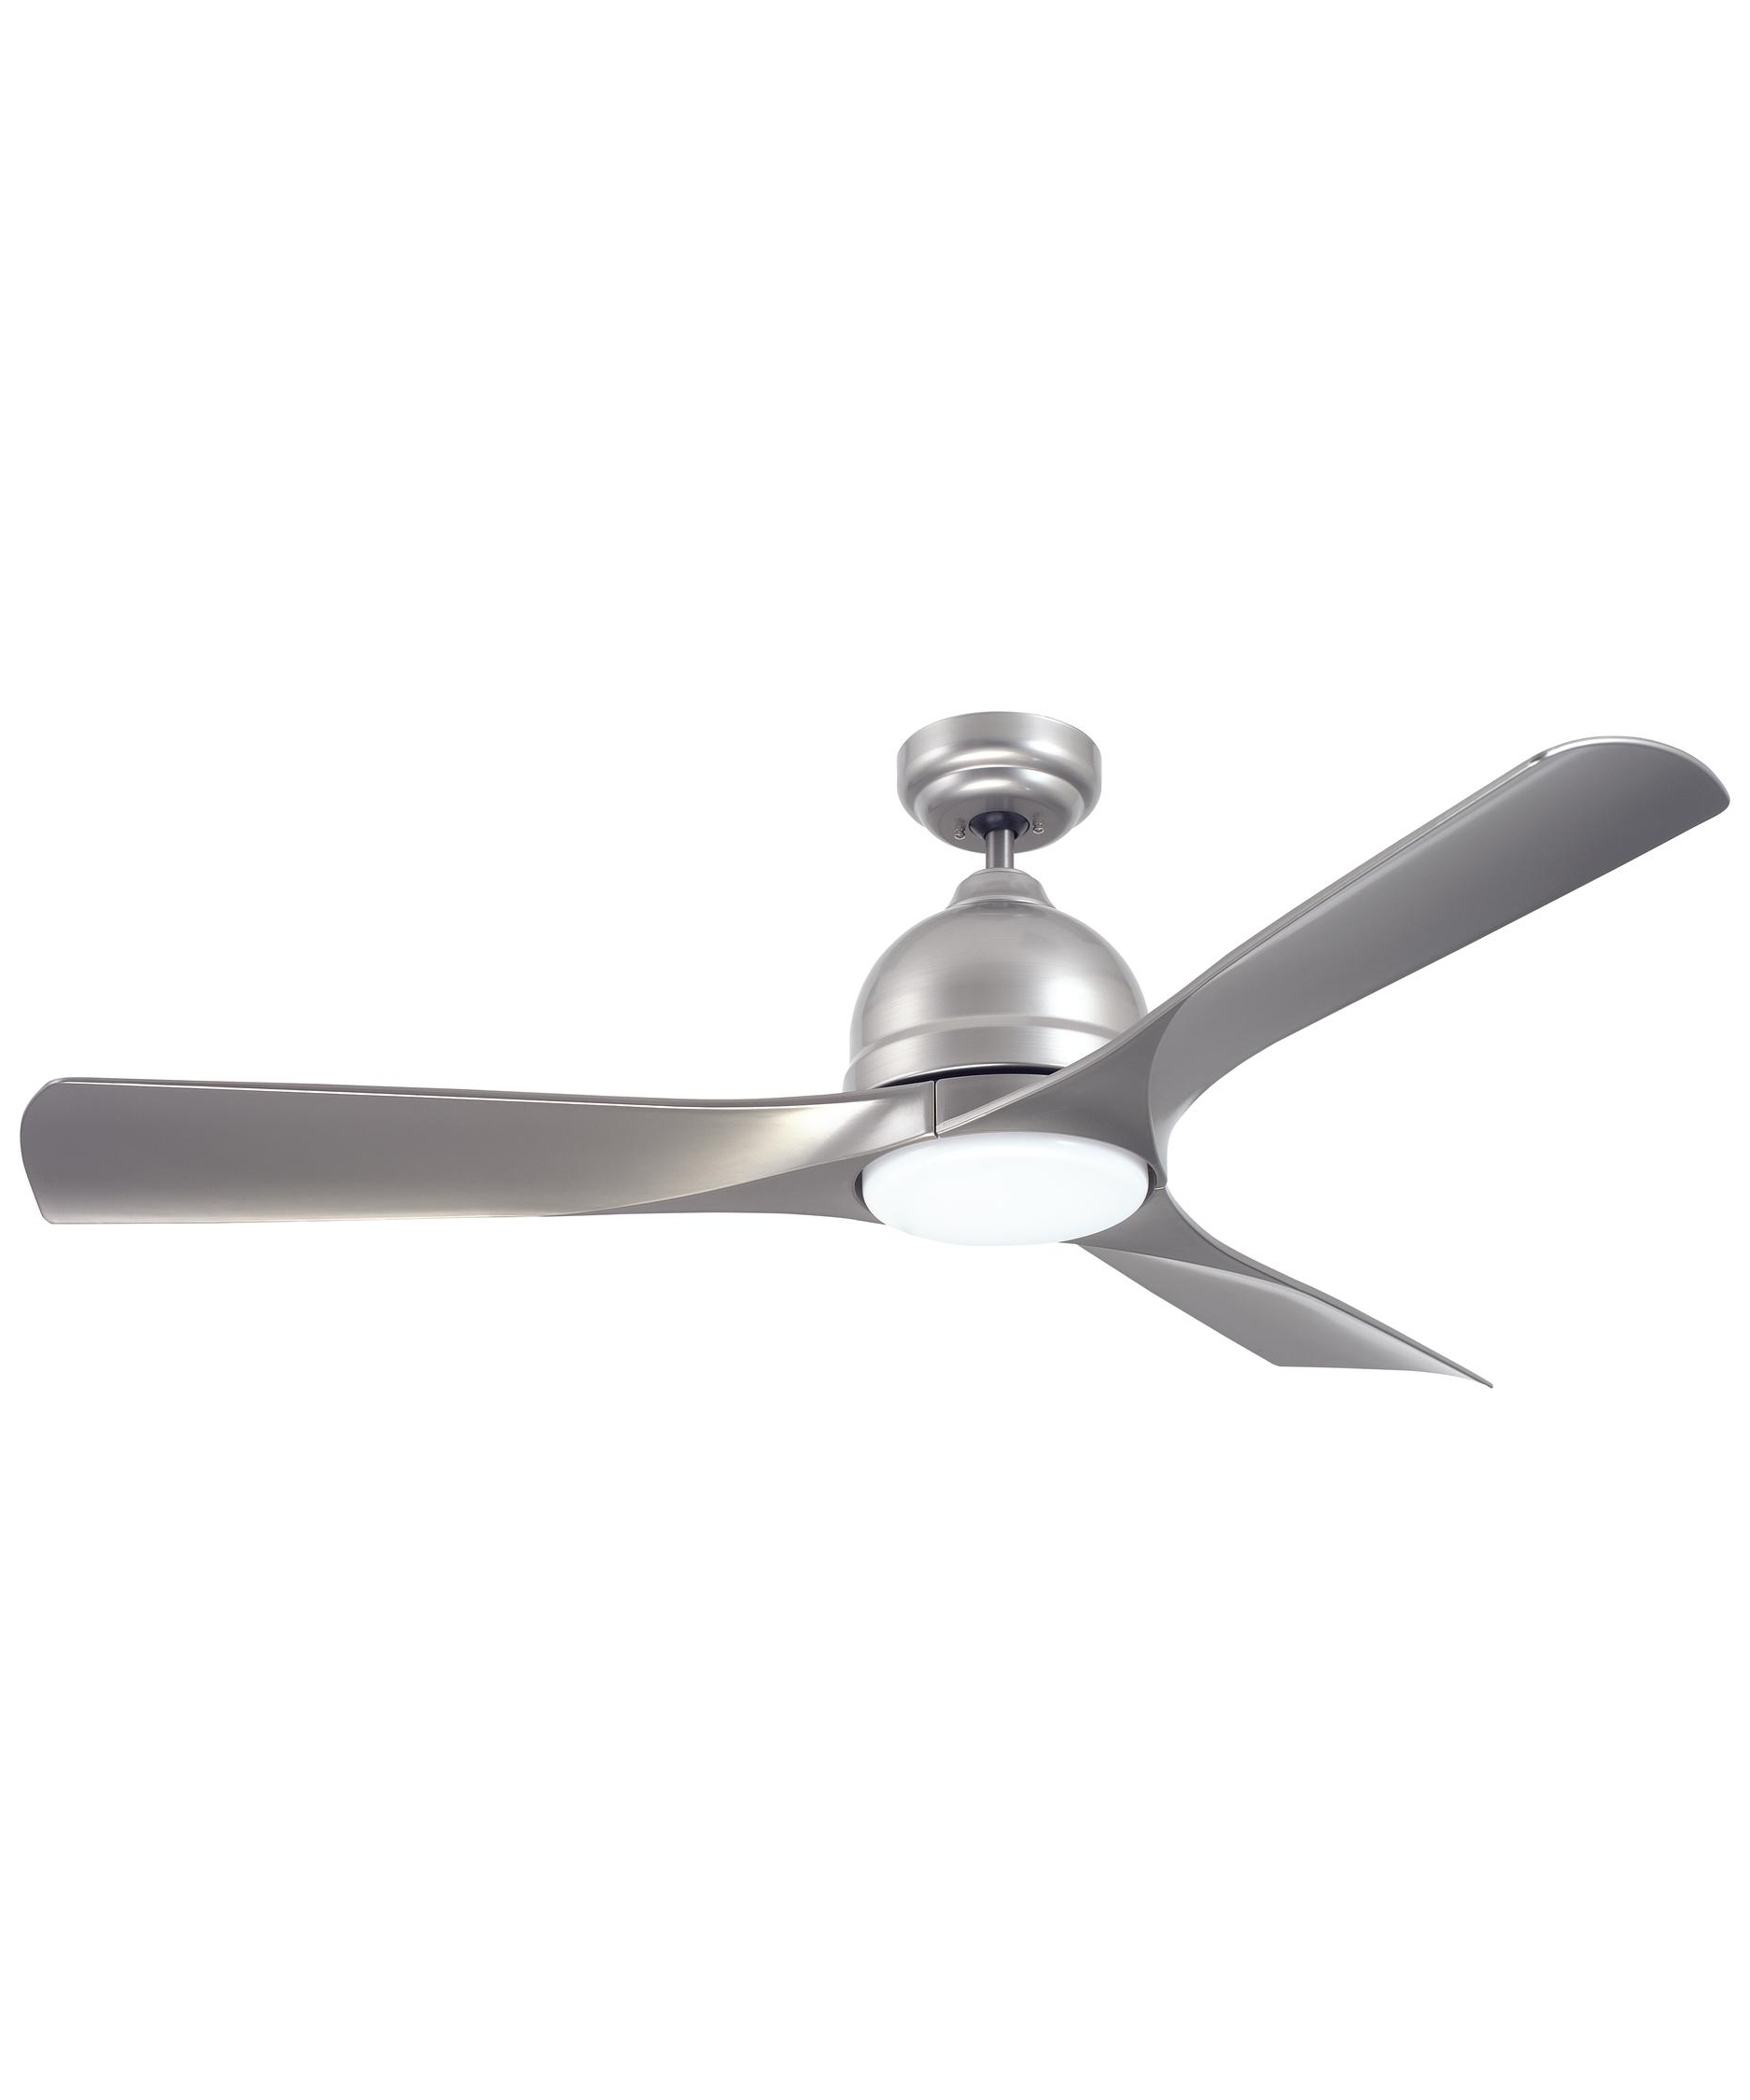 2018 Modern Outdoor Ceiling Fans With Lights Inside Emerson Cf590 Volta 54 Inch 3 Blade Ceiling Fan (Gallery 3 of 20)